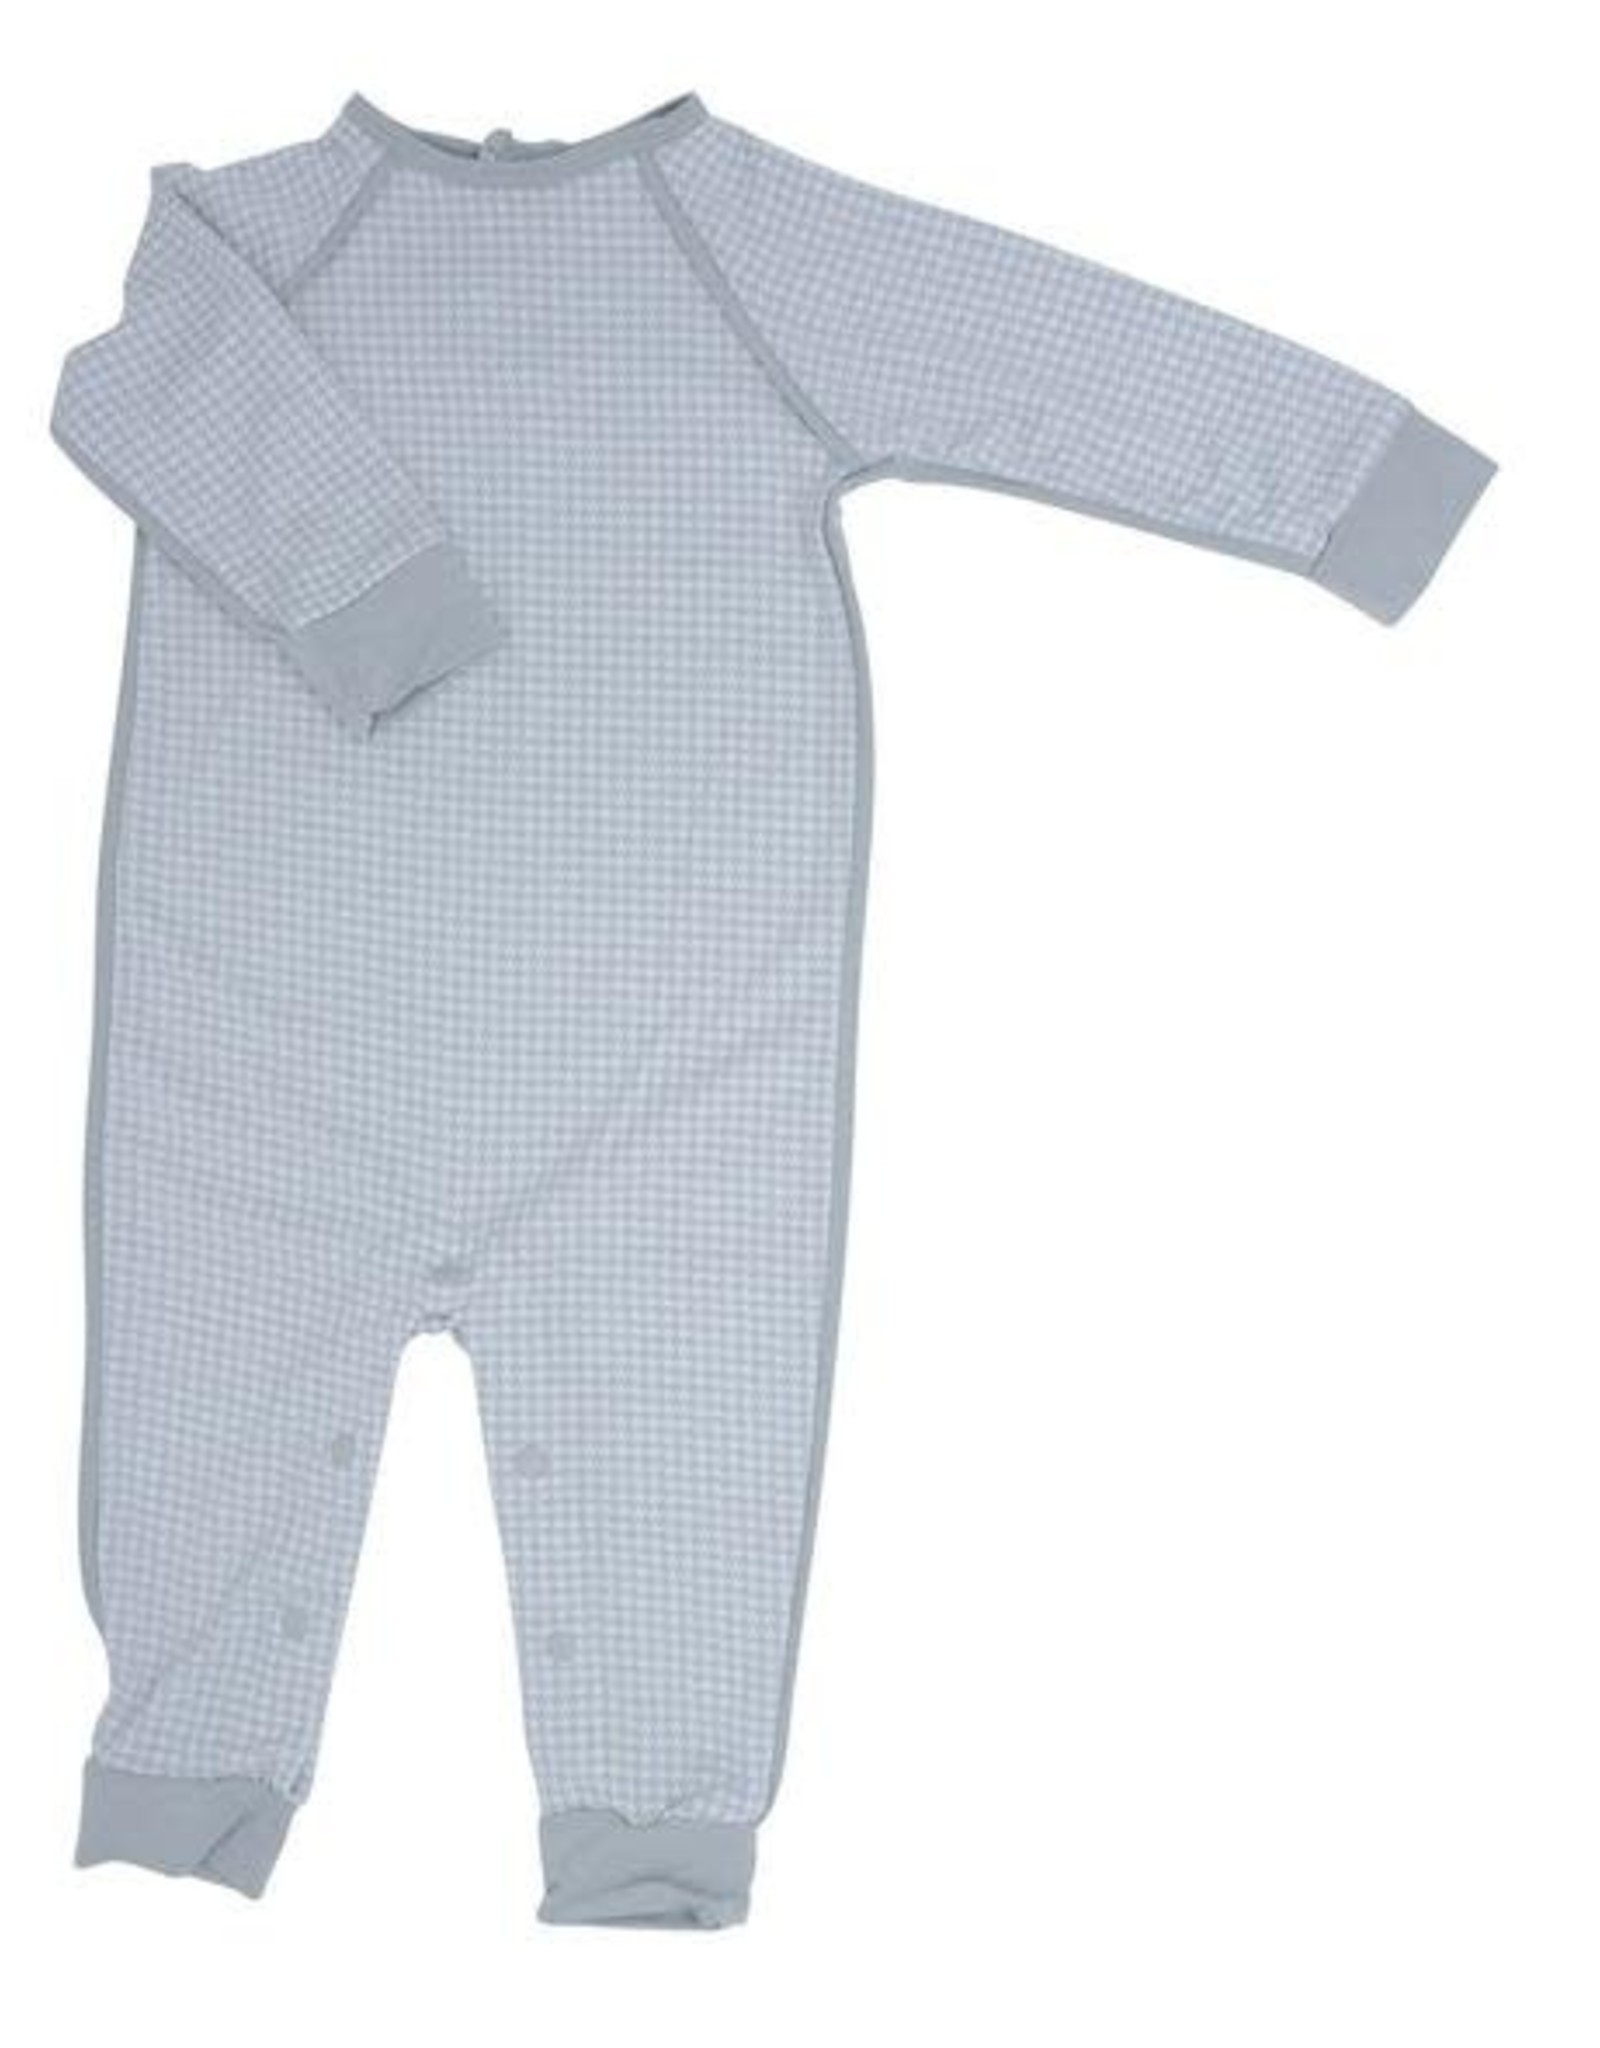 Sweet Bamboo Long Romper c/ Back Placket - Grey Houndstooth